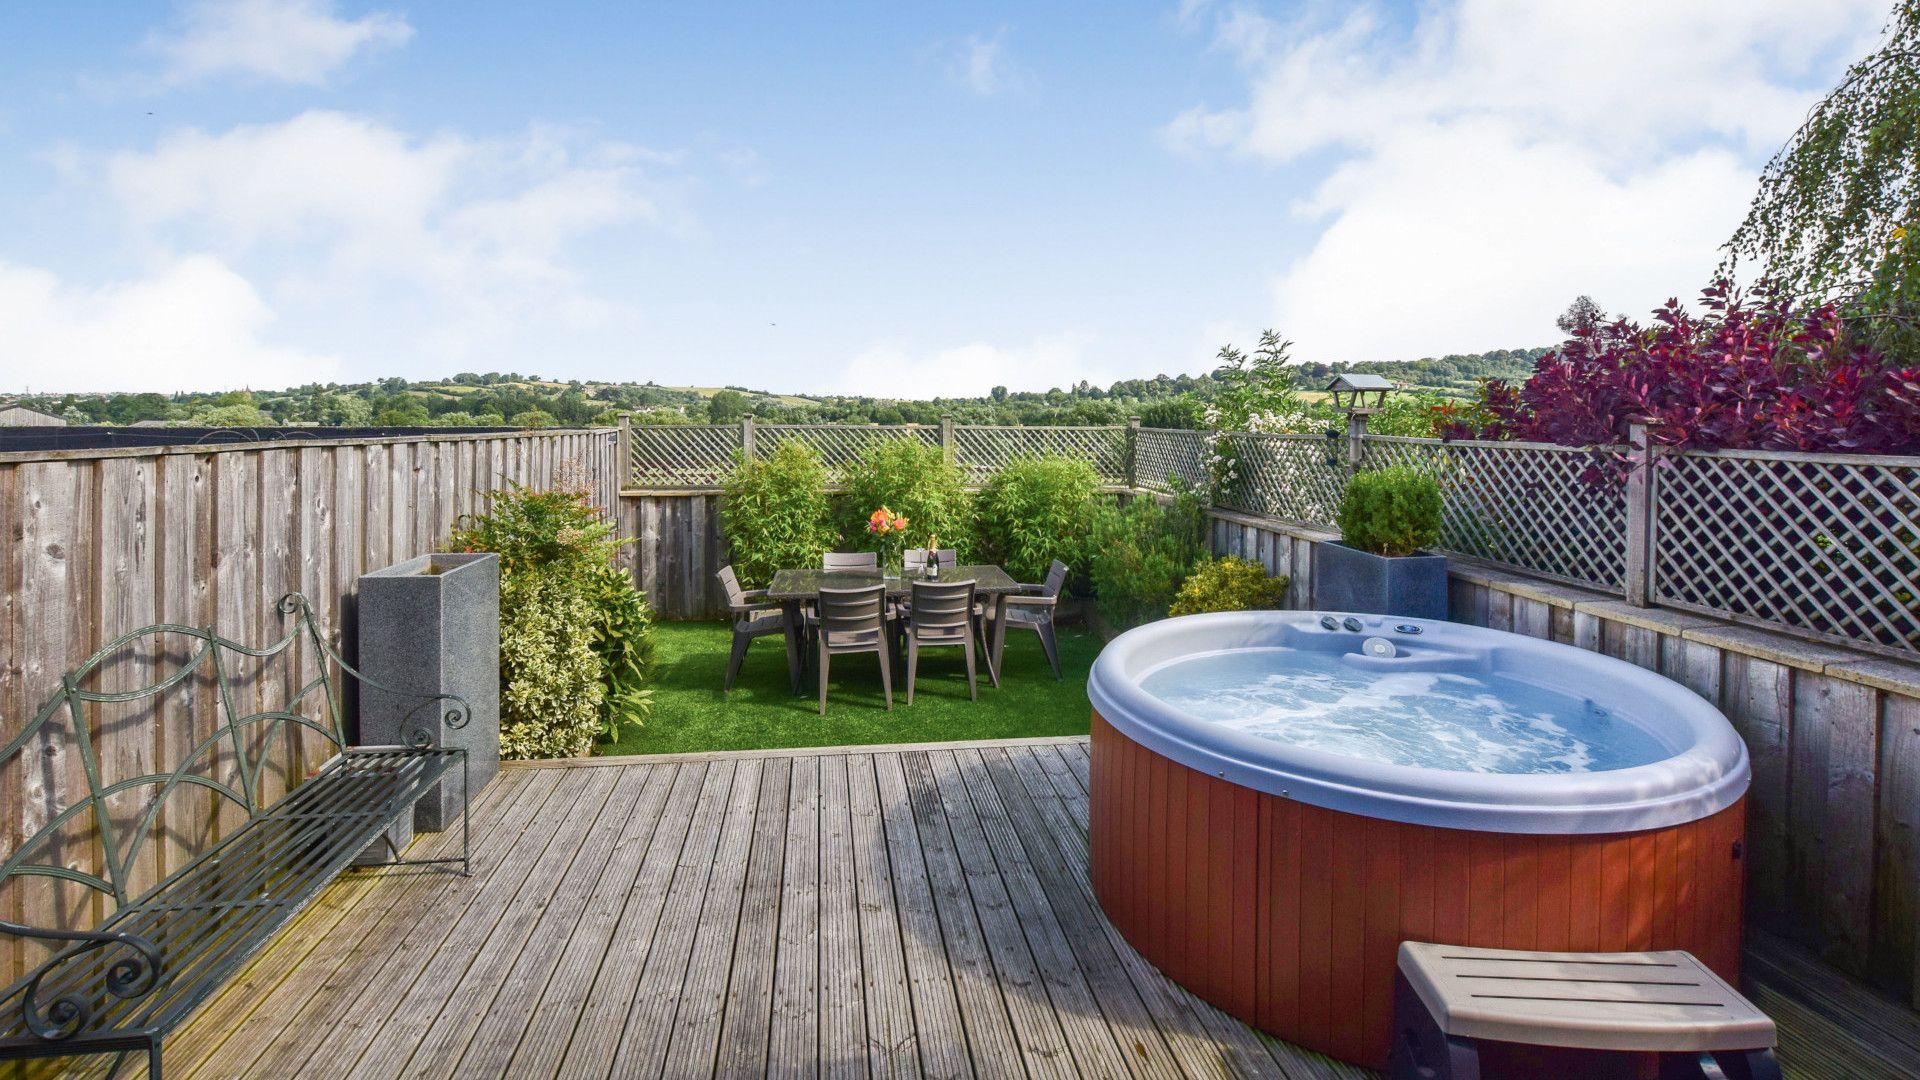 Decking area and hot tub, Meadow View at Avon Farm, Bolthole Retreats